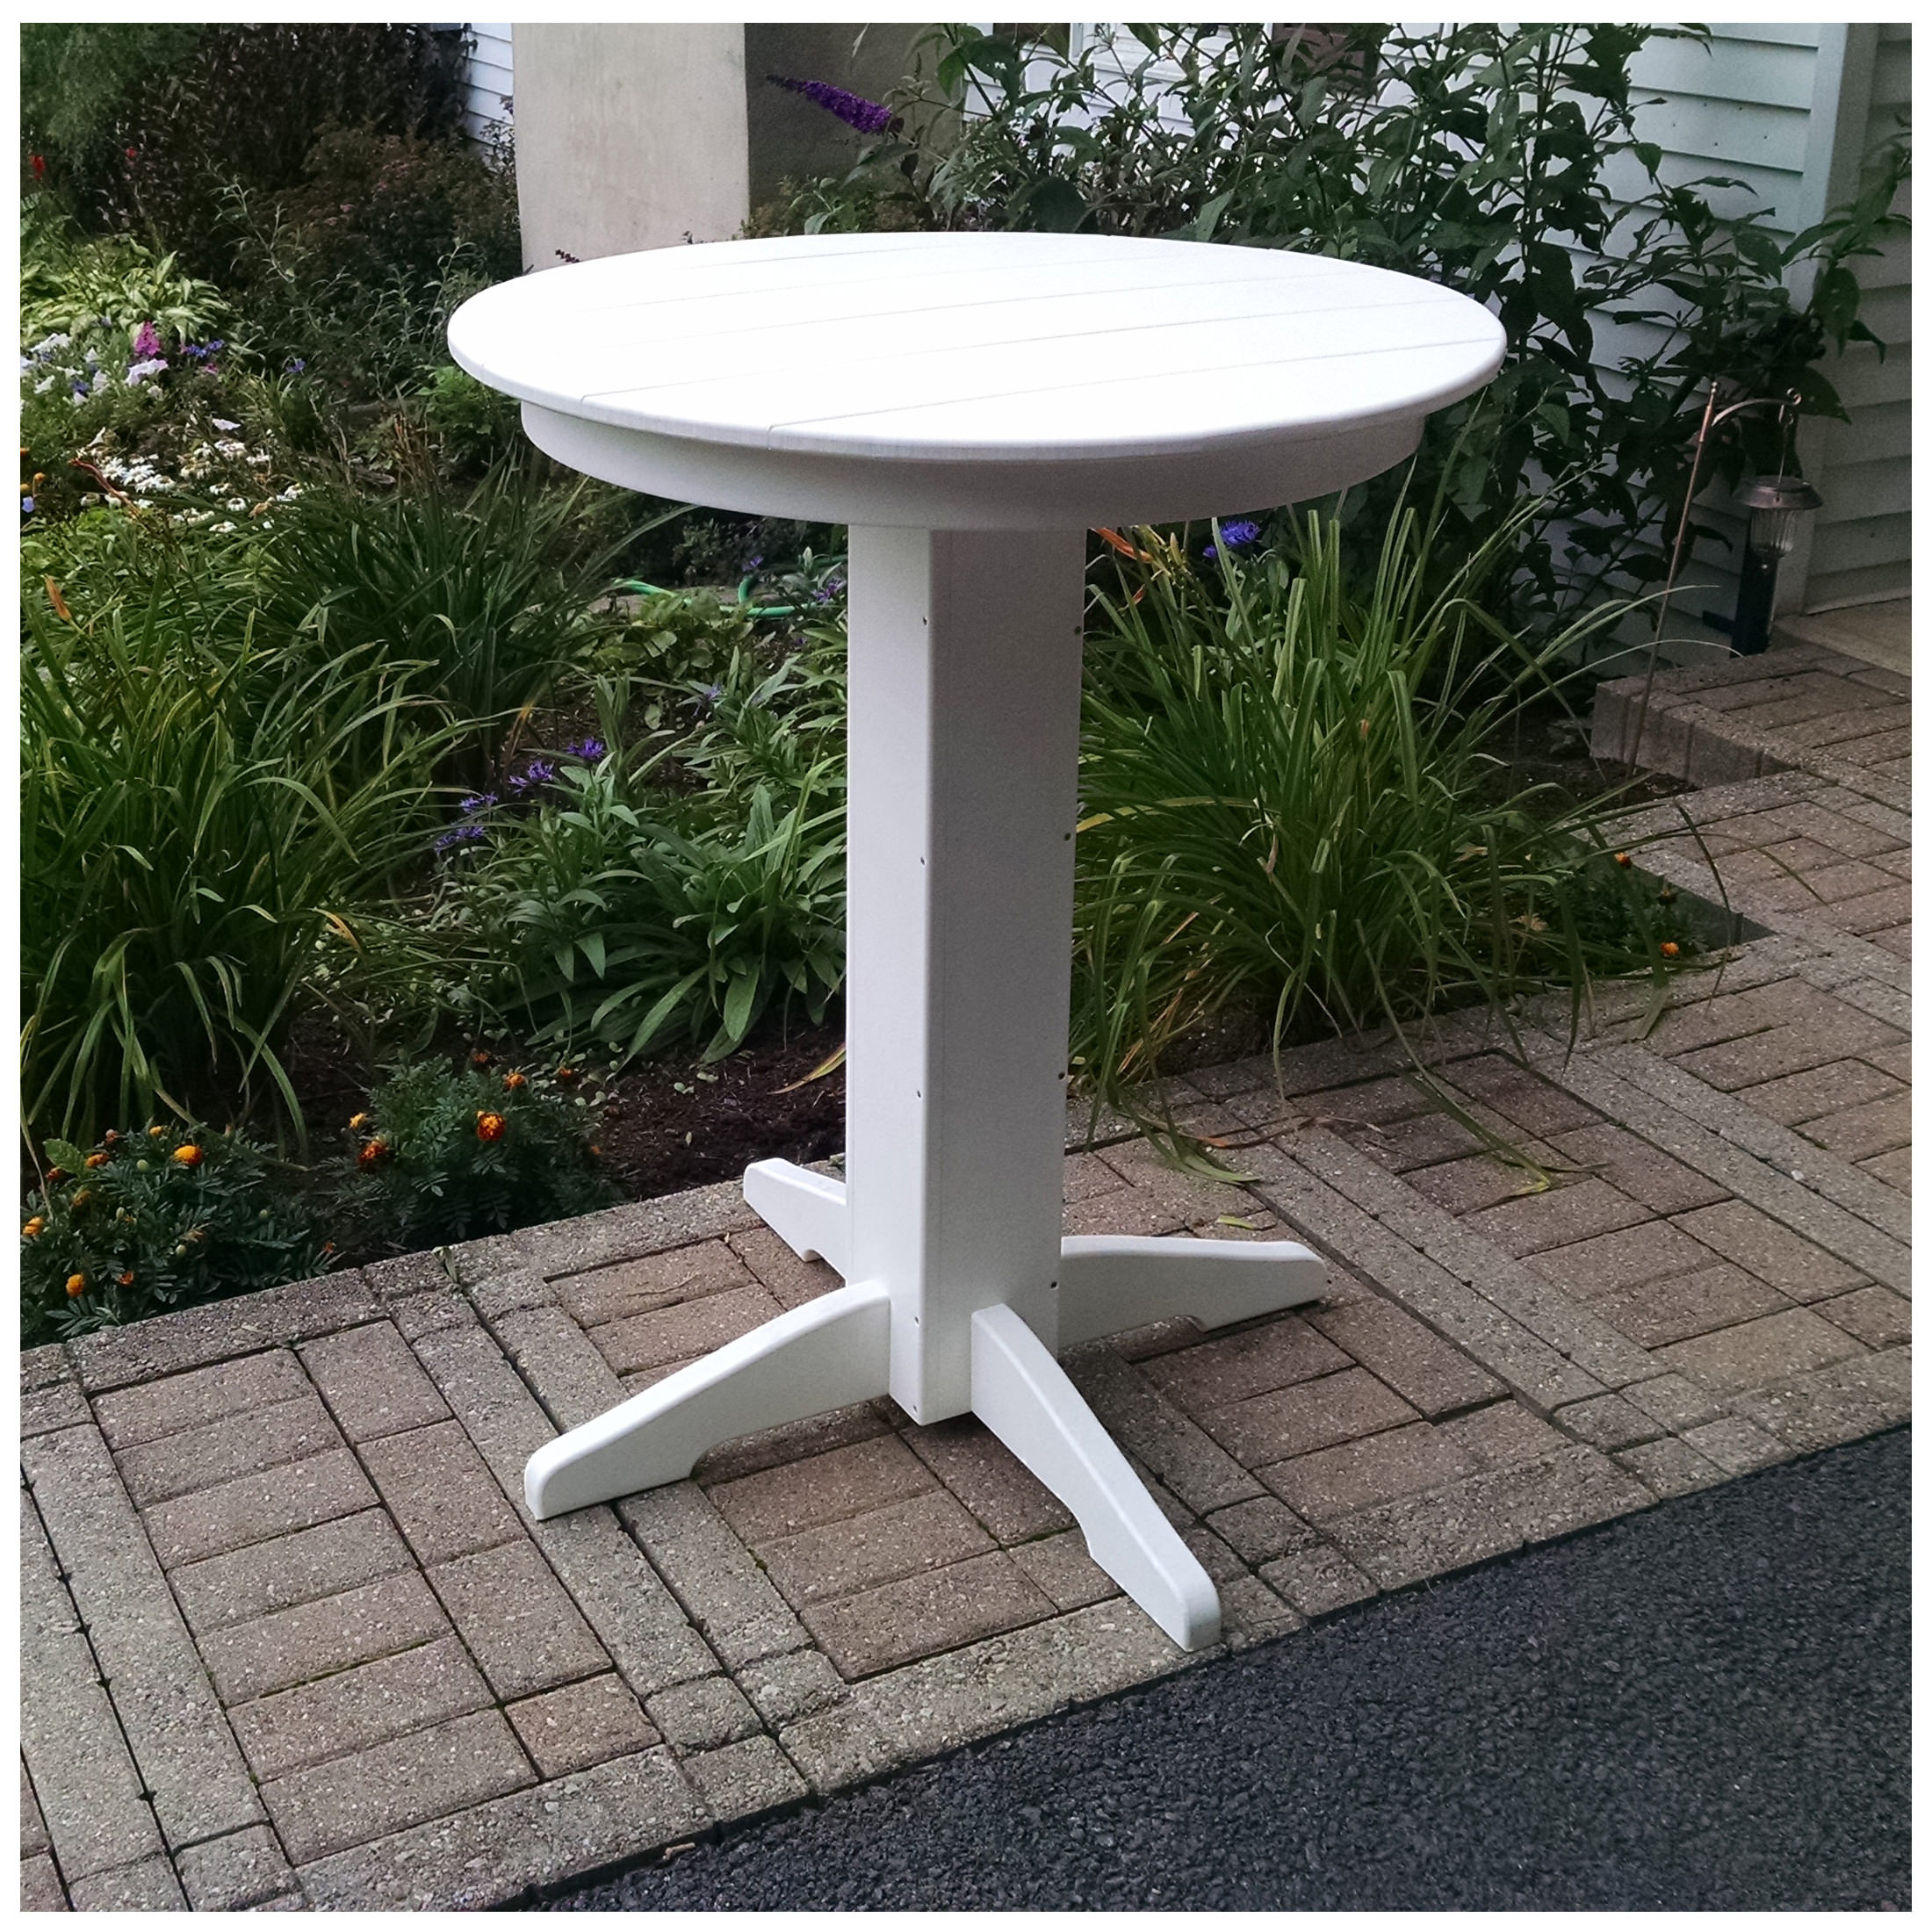 A&L Furniture 33 in Round Bar Table